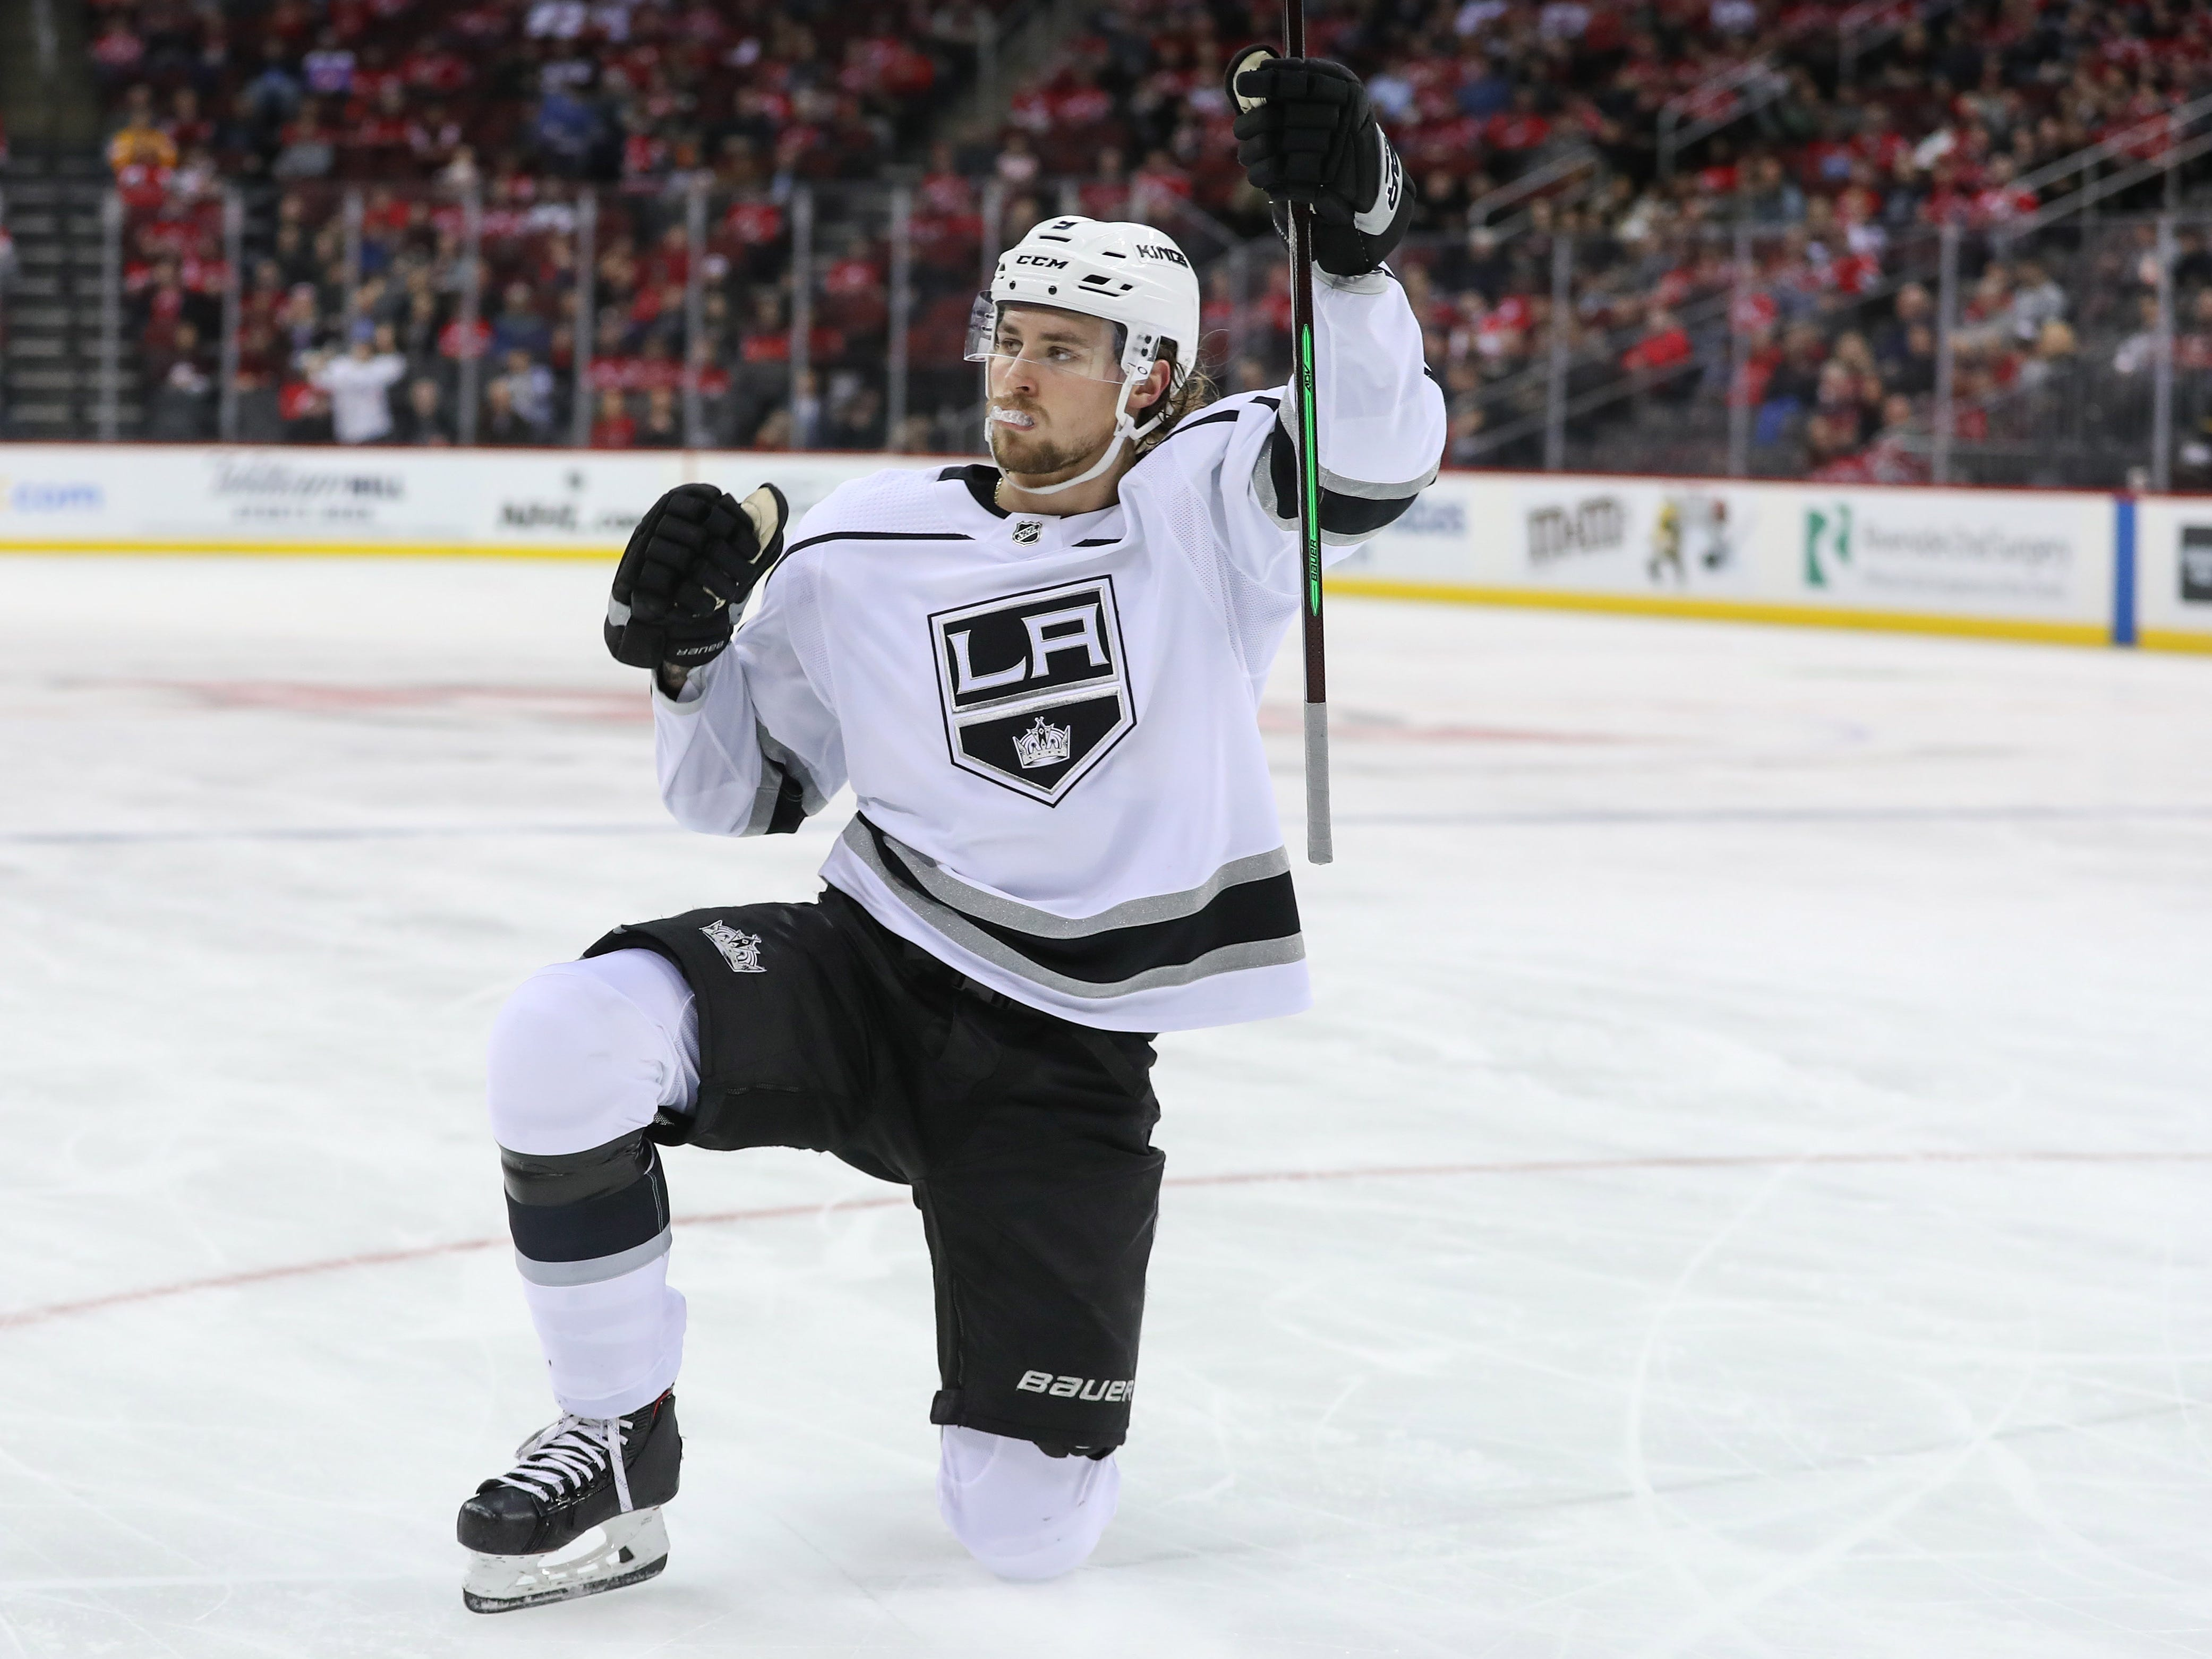 Feb 5, 2019; Newark, NJ, USA; Los Angeles Kings center Adrian Kempe (9) celebrates after scoring a goal during the first period against the New Jersey Devils at Prudential Center.